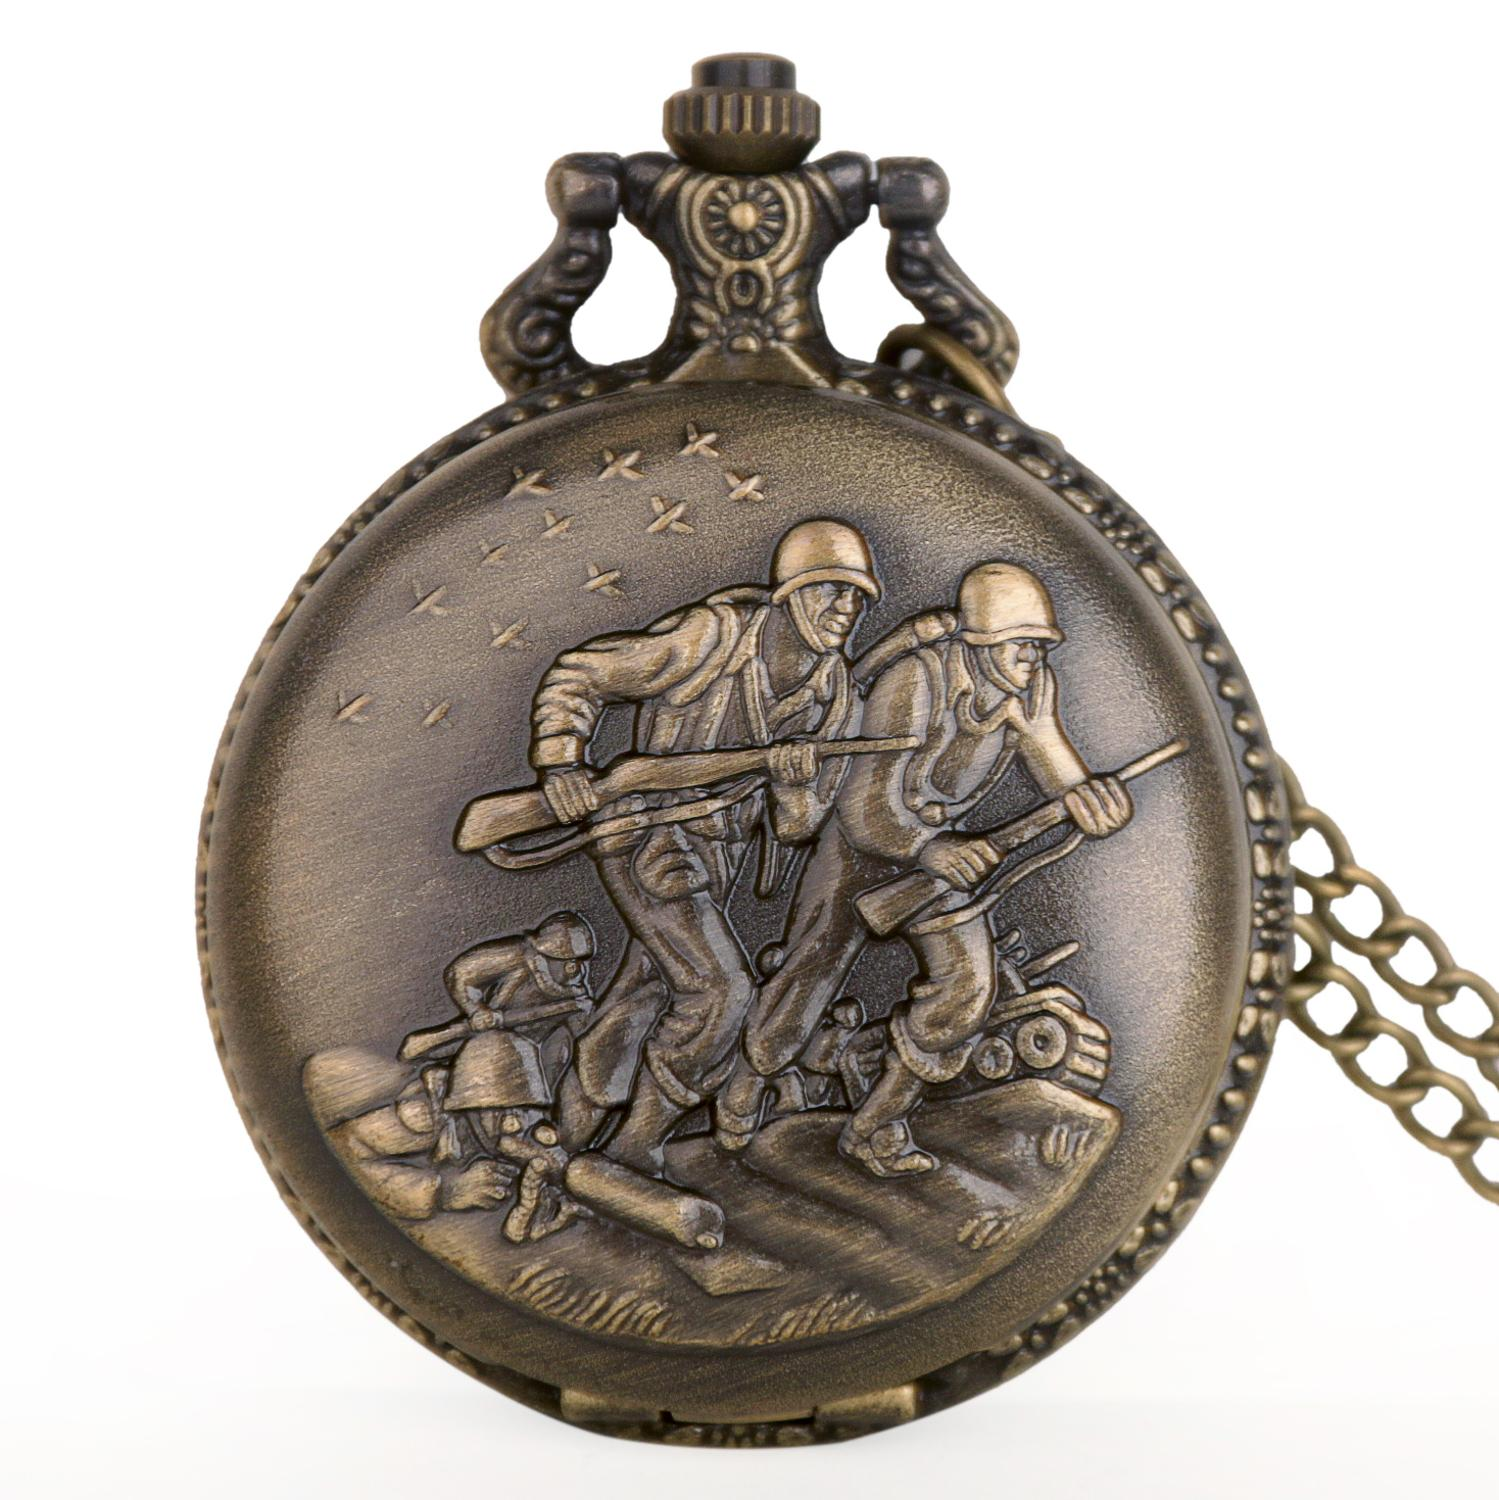 Bronze Vintage Brave Fighter Soldier Quartz Pocket Watch Steampunk Pendant Necklace Chain Numerals Pocket Watch Regarder Gift